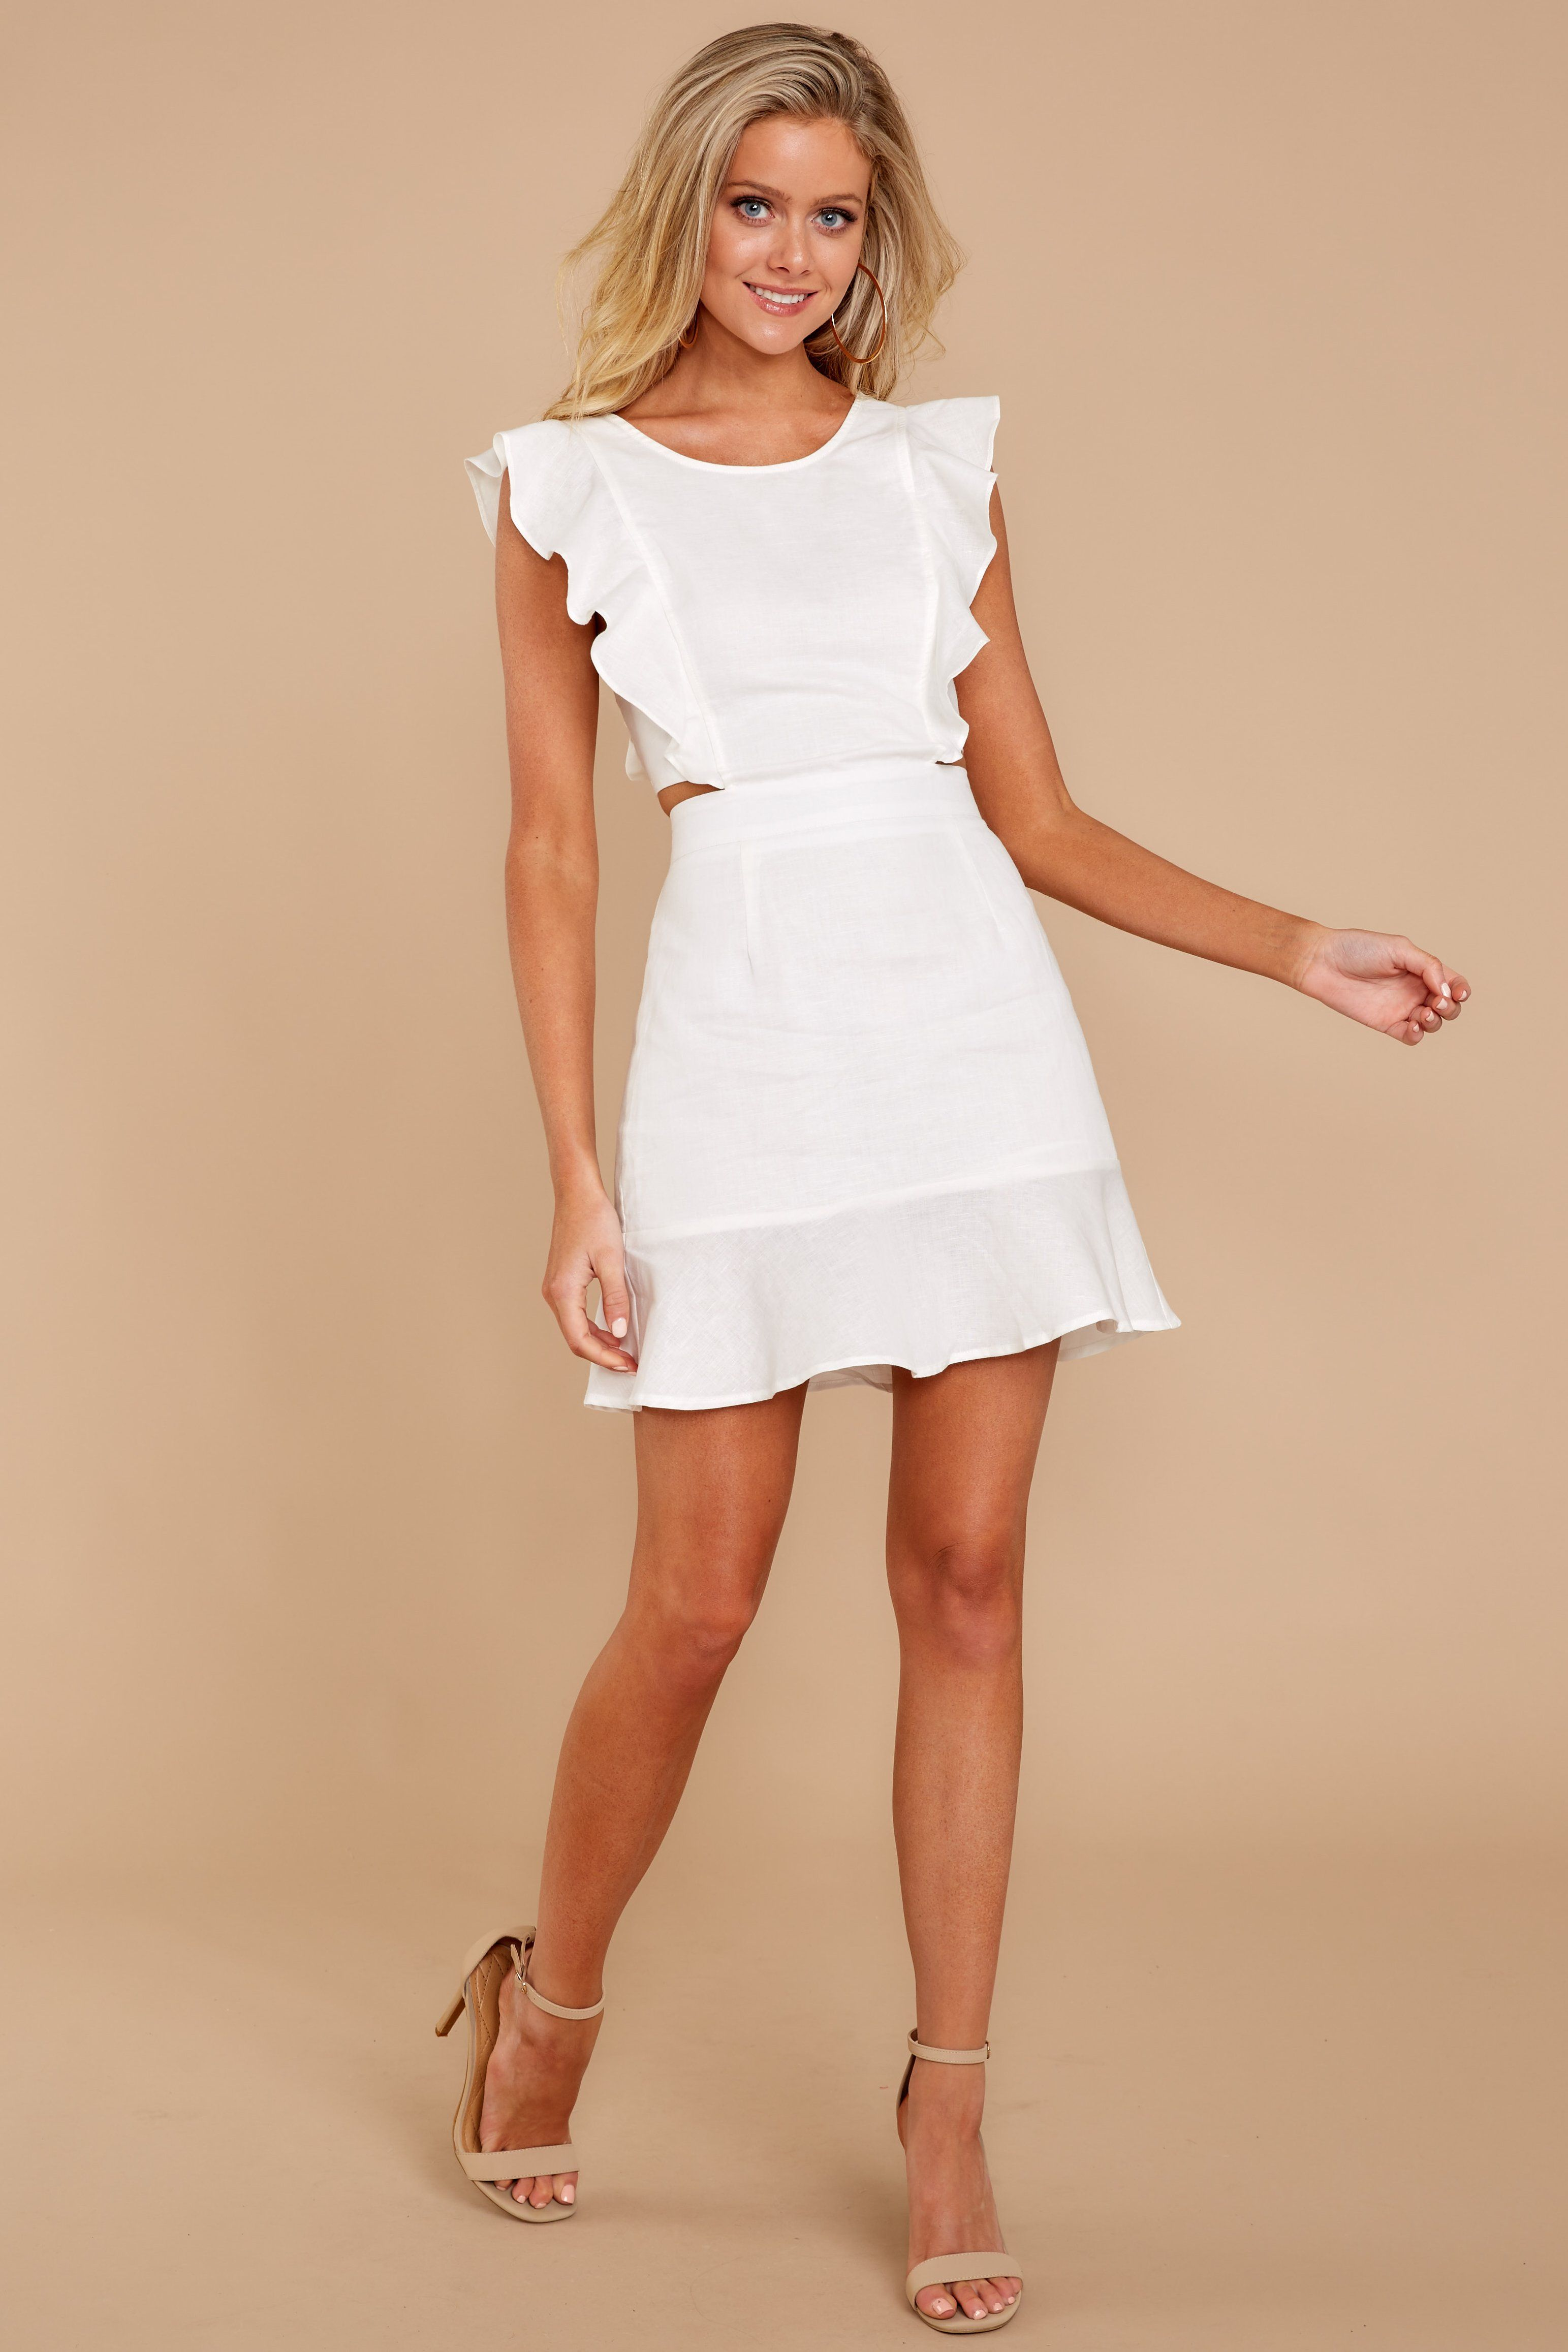 Adorable White Dress Chic 48 00 Red Boutique